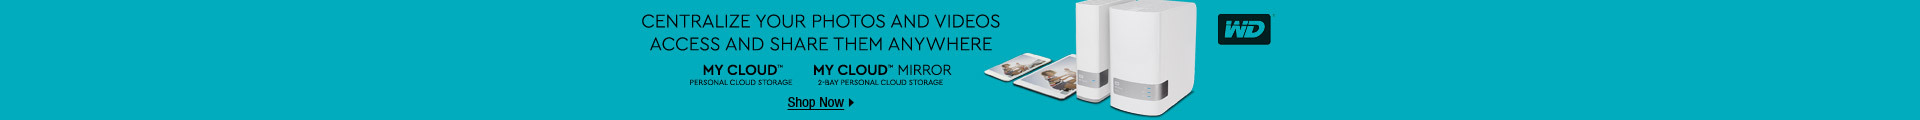 Centralize Your Photos and Videos